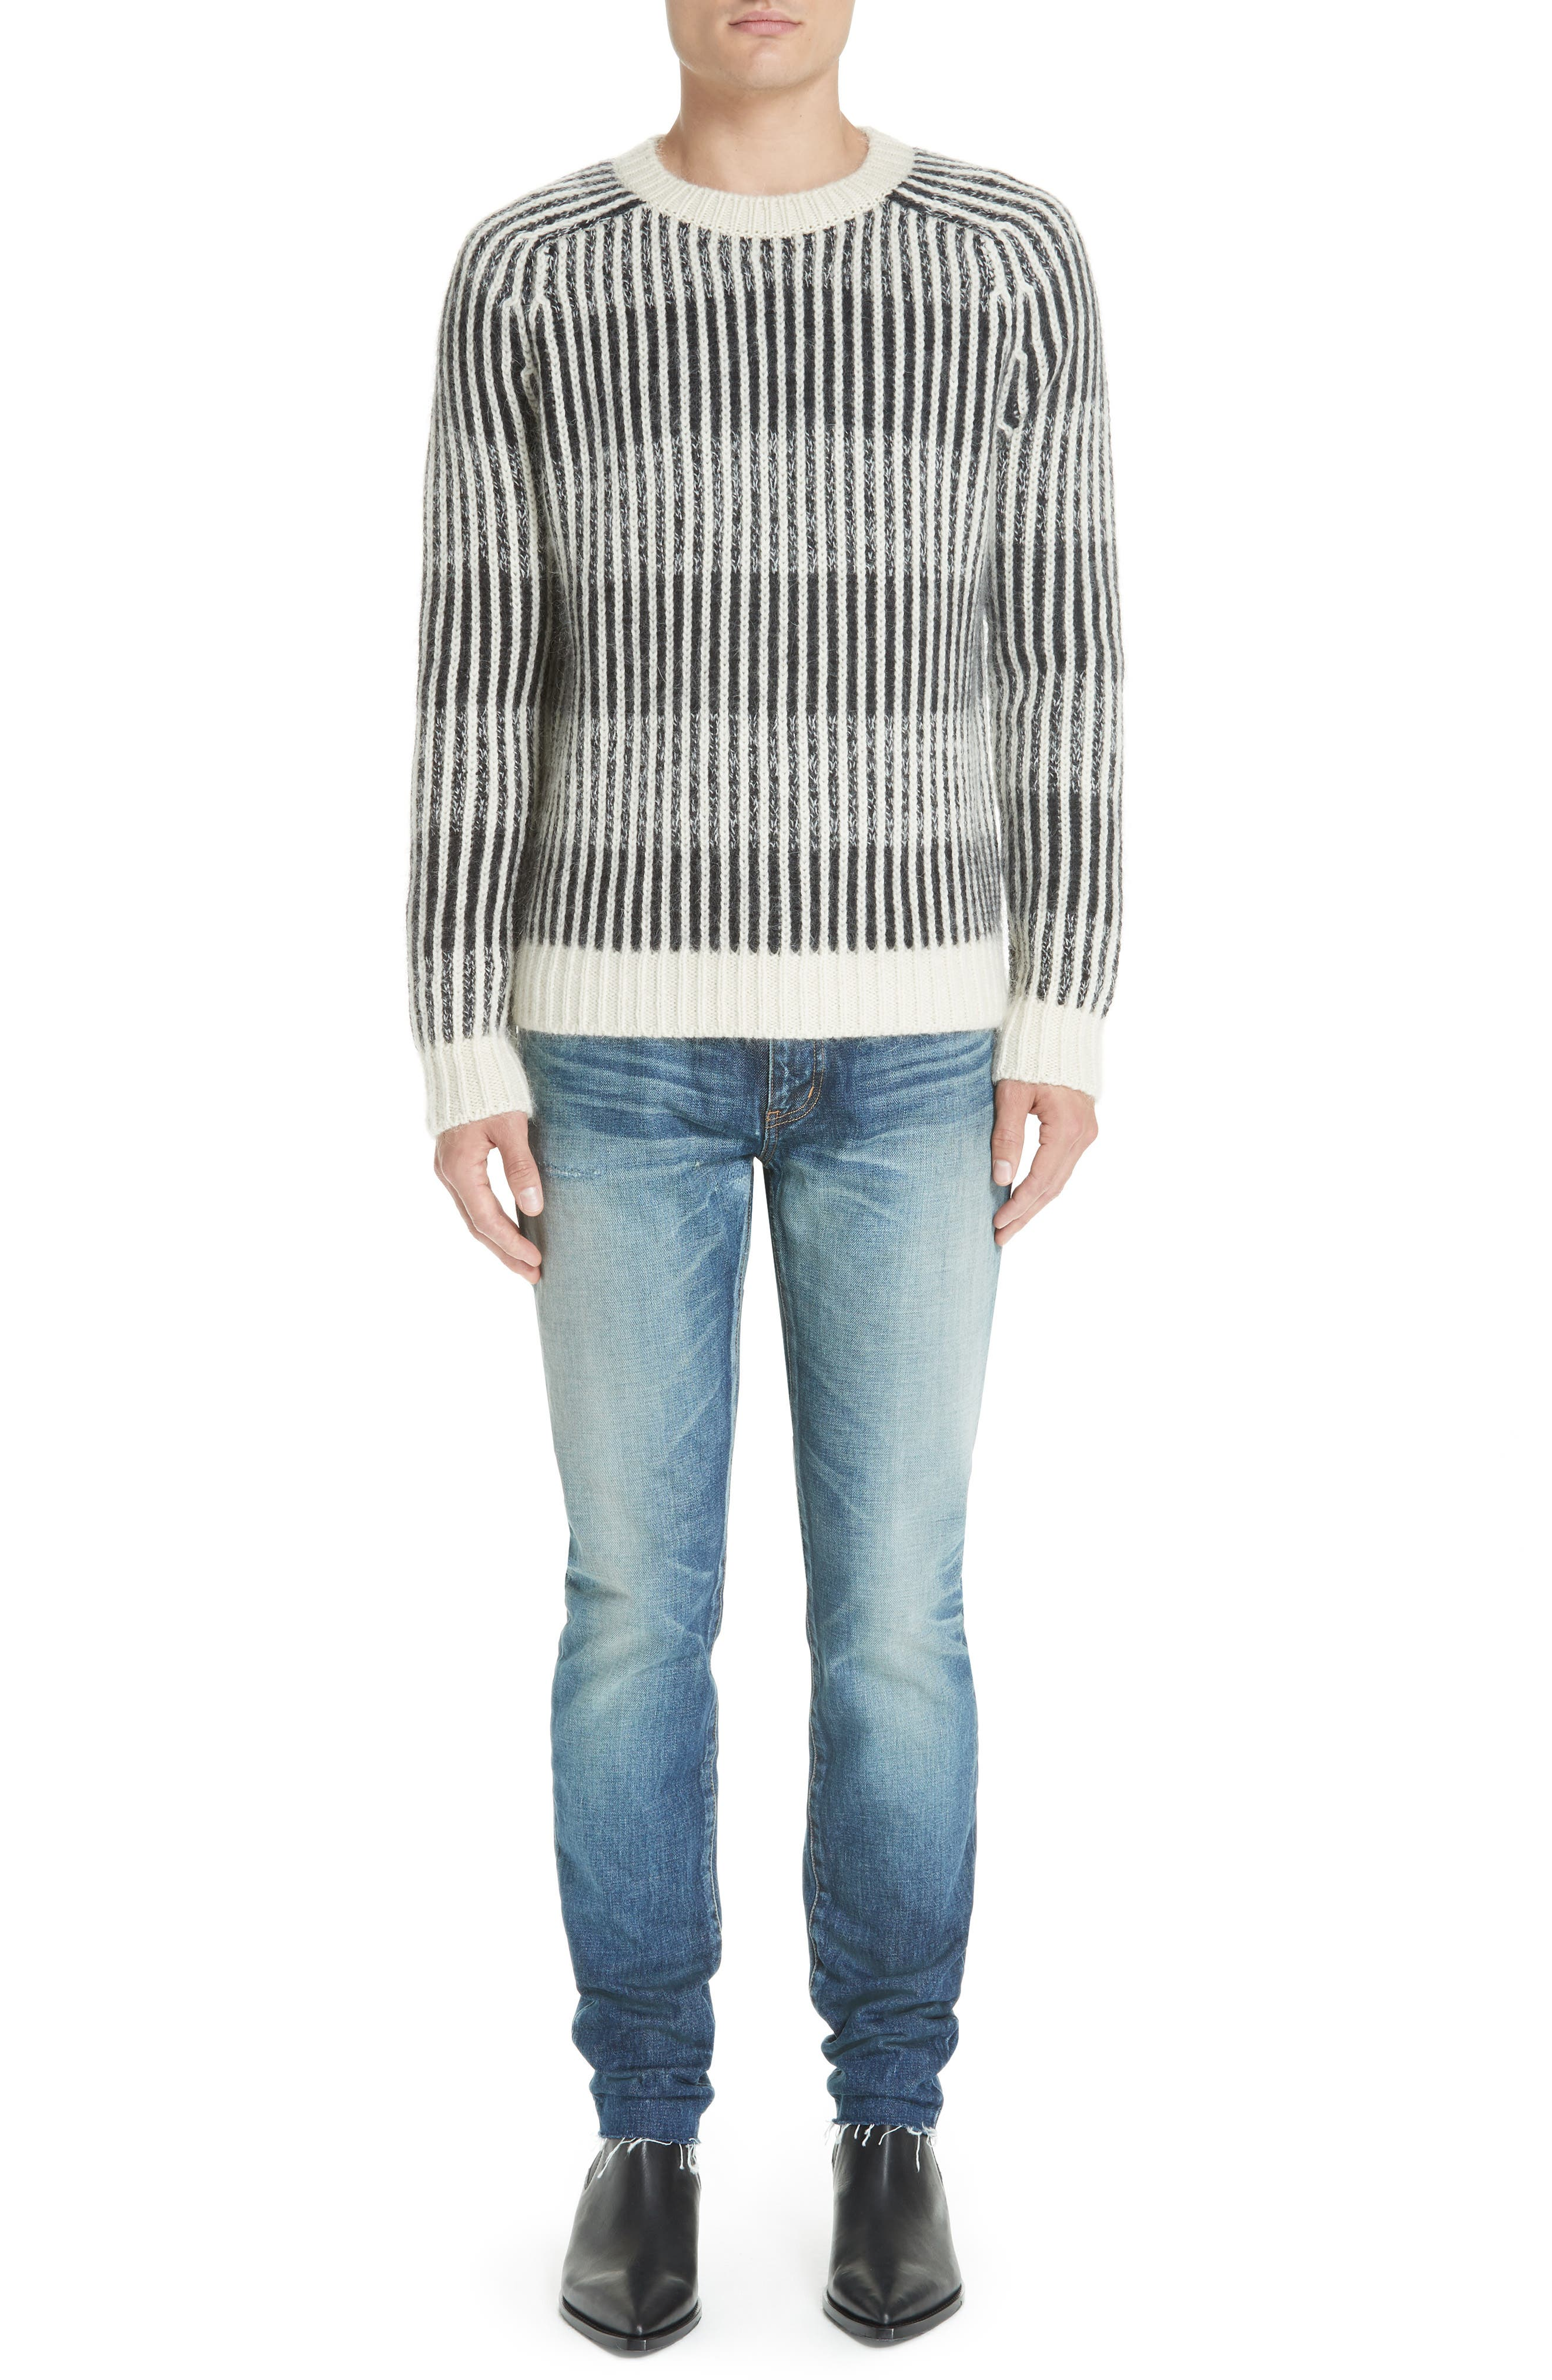 SAINT LAURENT,                             Contrast Rib Wool & Alpaca Blend Sweater,                             Alternate thumbnail 7, color,                             134